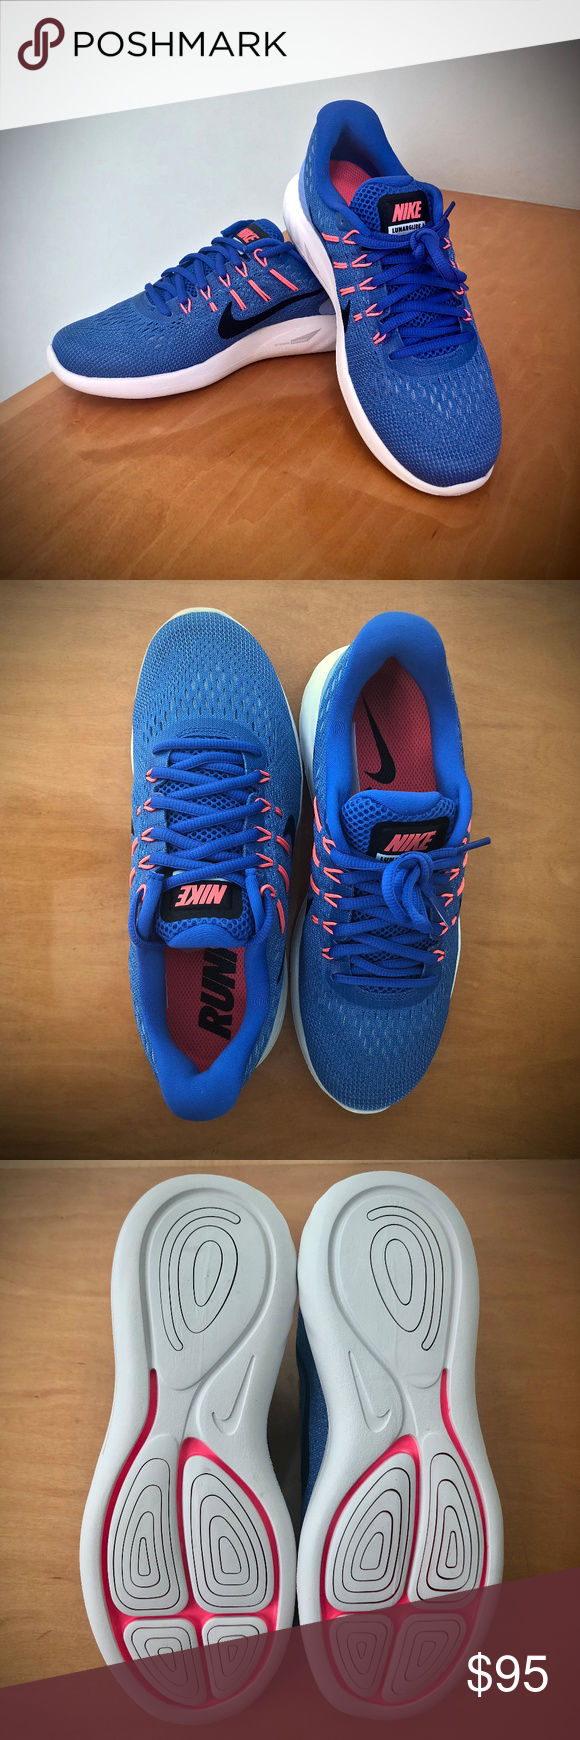 4768ede7131e NWT Nike Lunarglide 8 Running Shoe in Bright Blue NWT